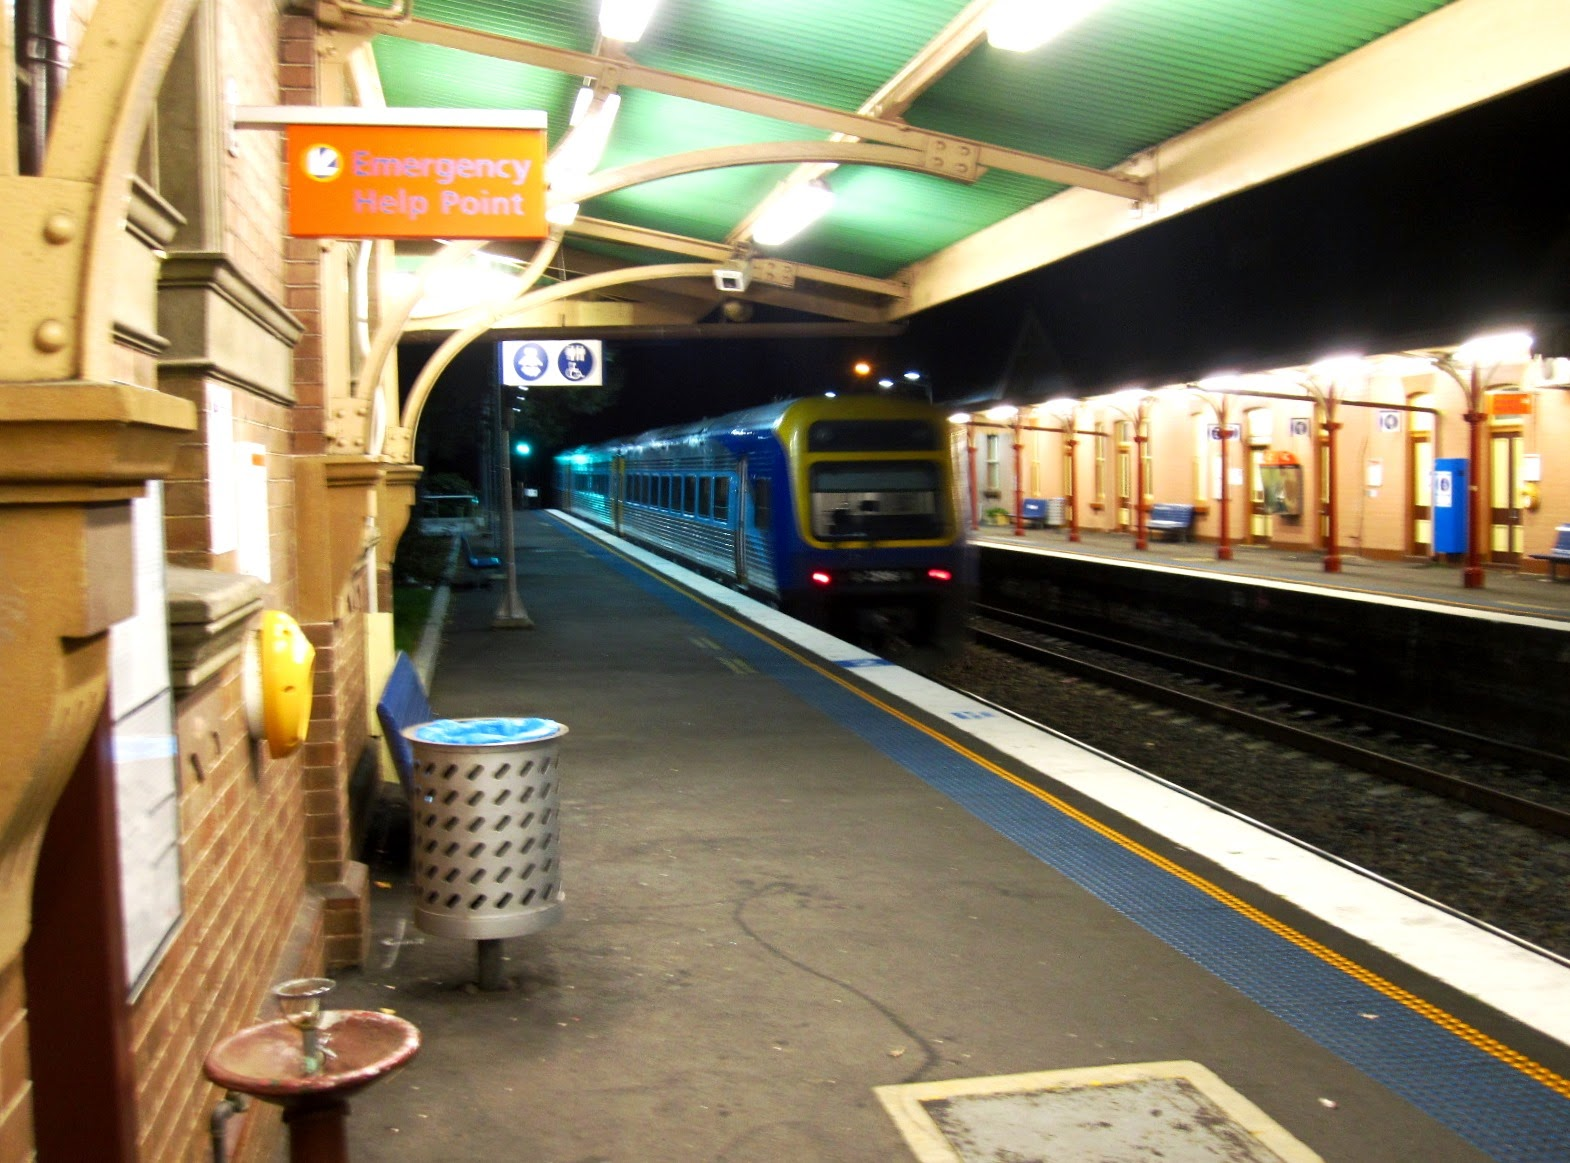 A train leaving Bowral station.